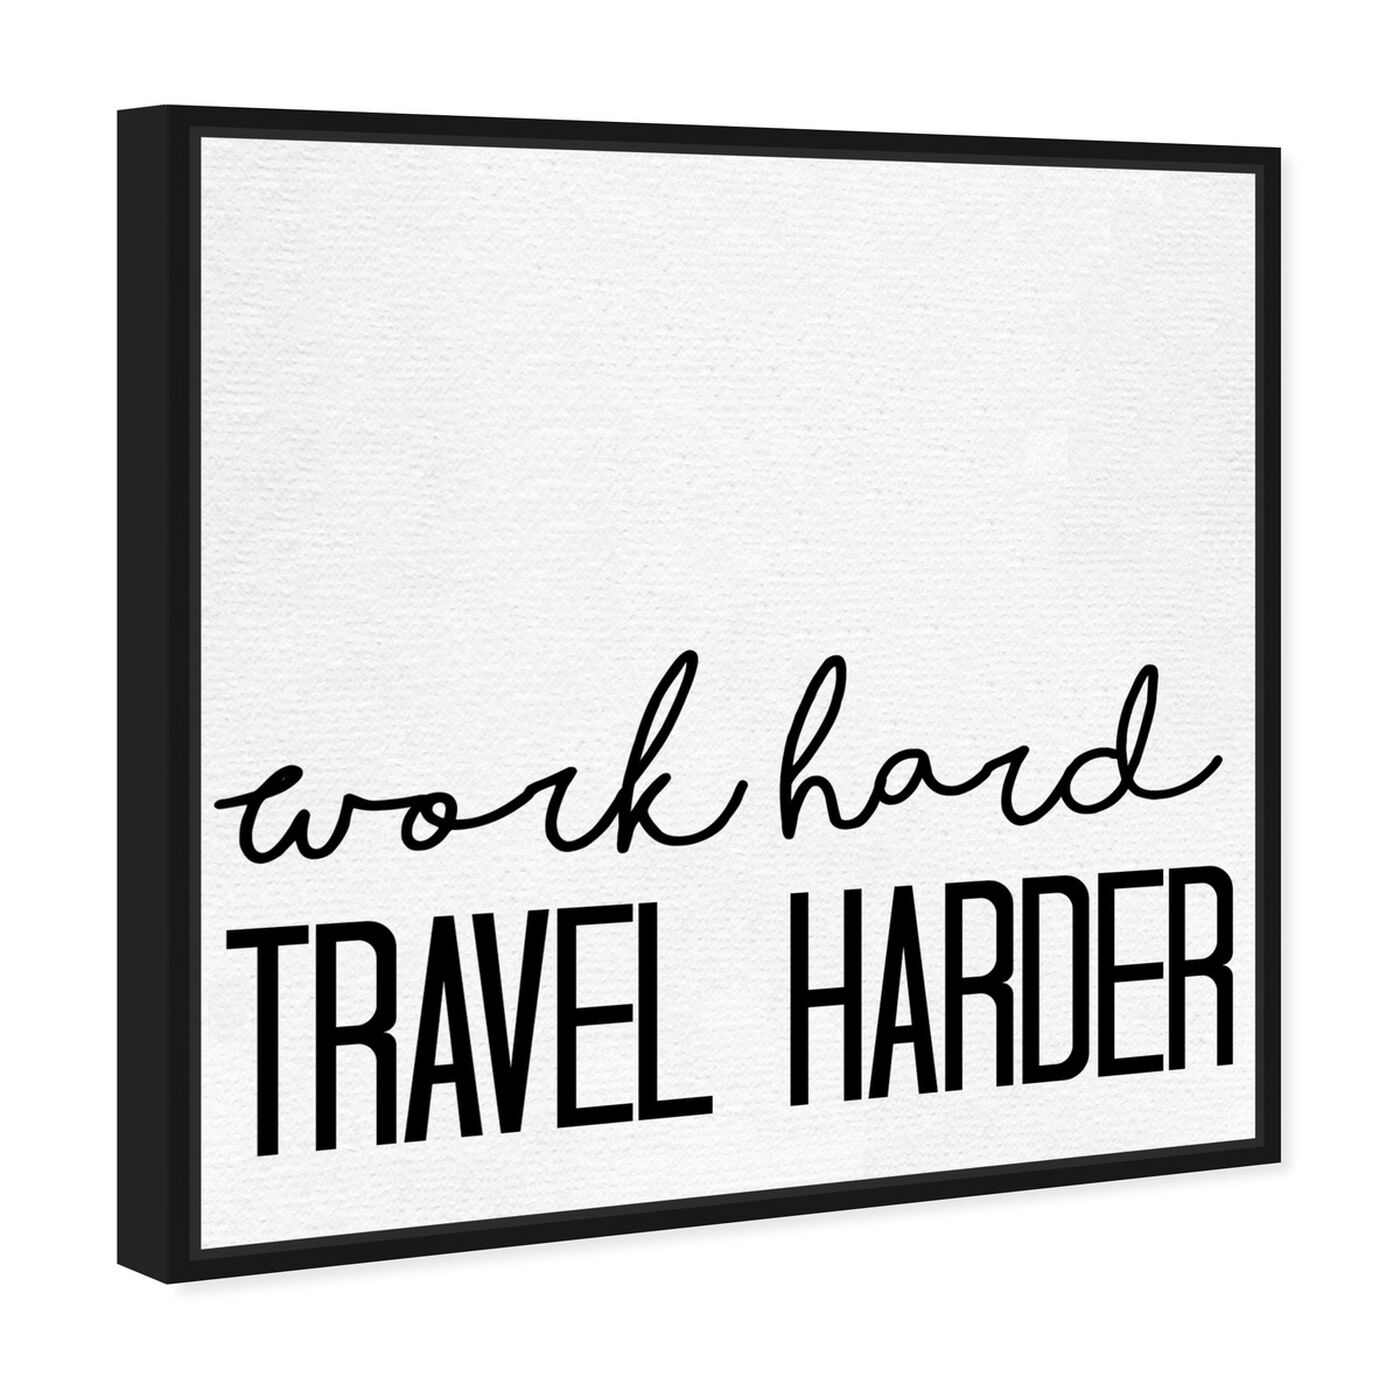 Angled view of Travel Harder featuring typography and quotes and motivational quotes and sayings art.